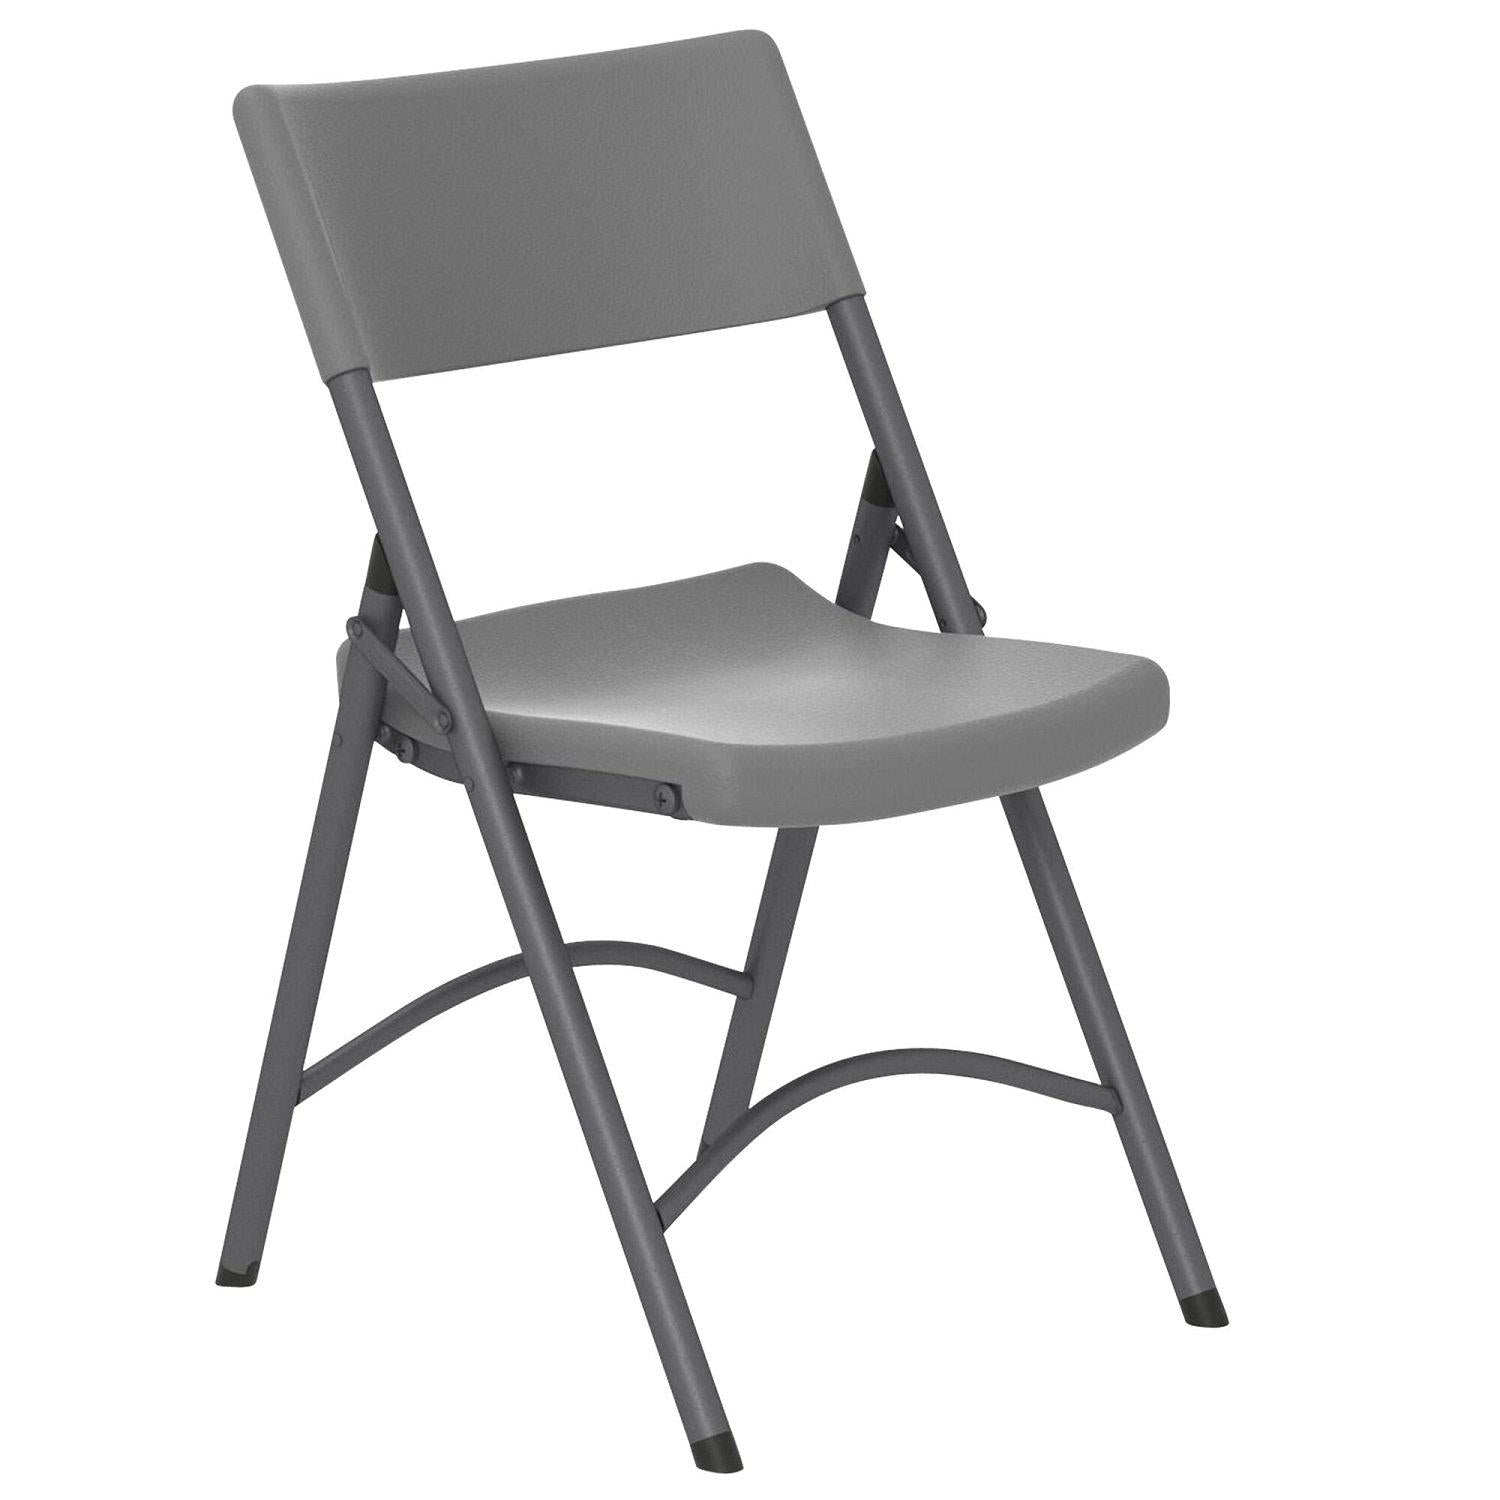 Dorel Zown Classic Commercial Heavy-Duty Resin Plastic Folding Chair, Grey